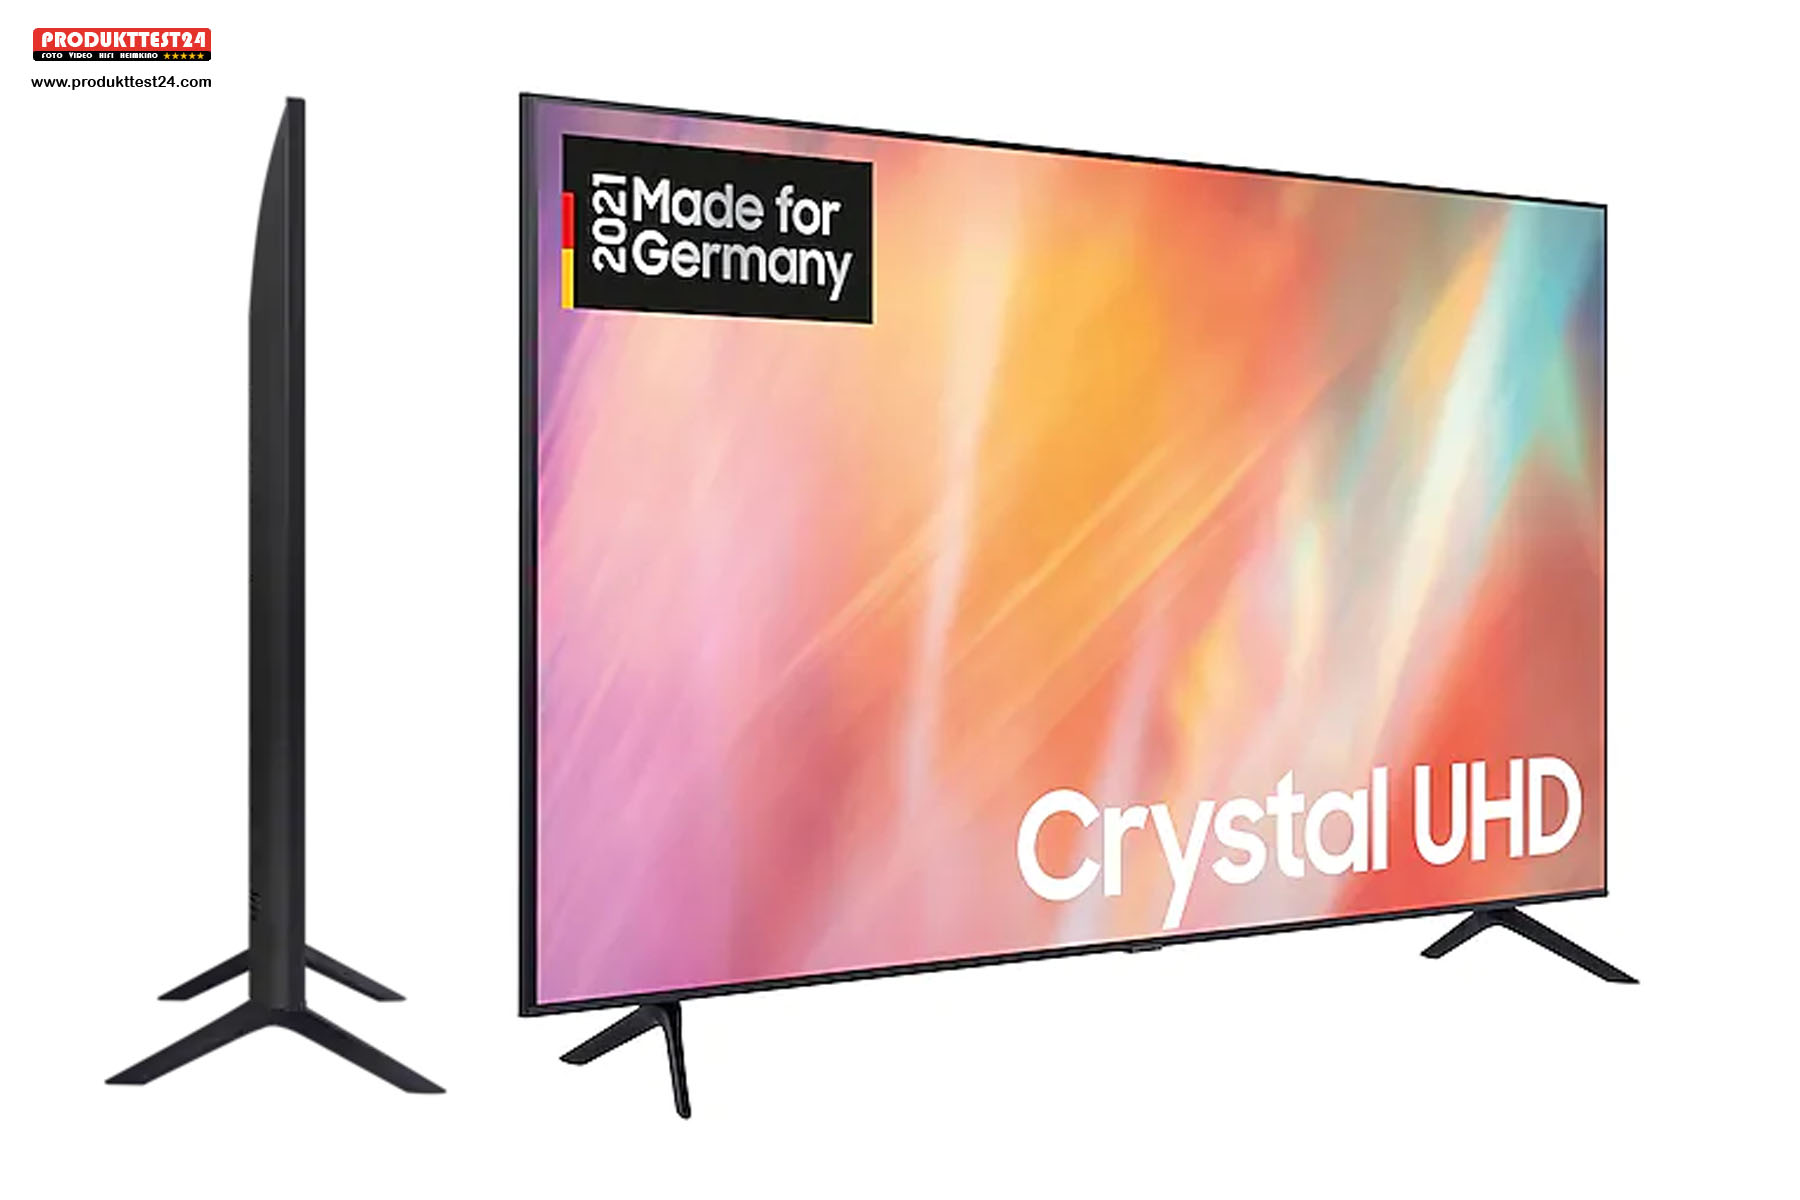 Riesiges 85 Zoll Display mit HDR10+